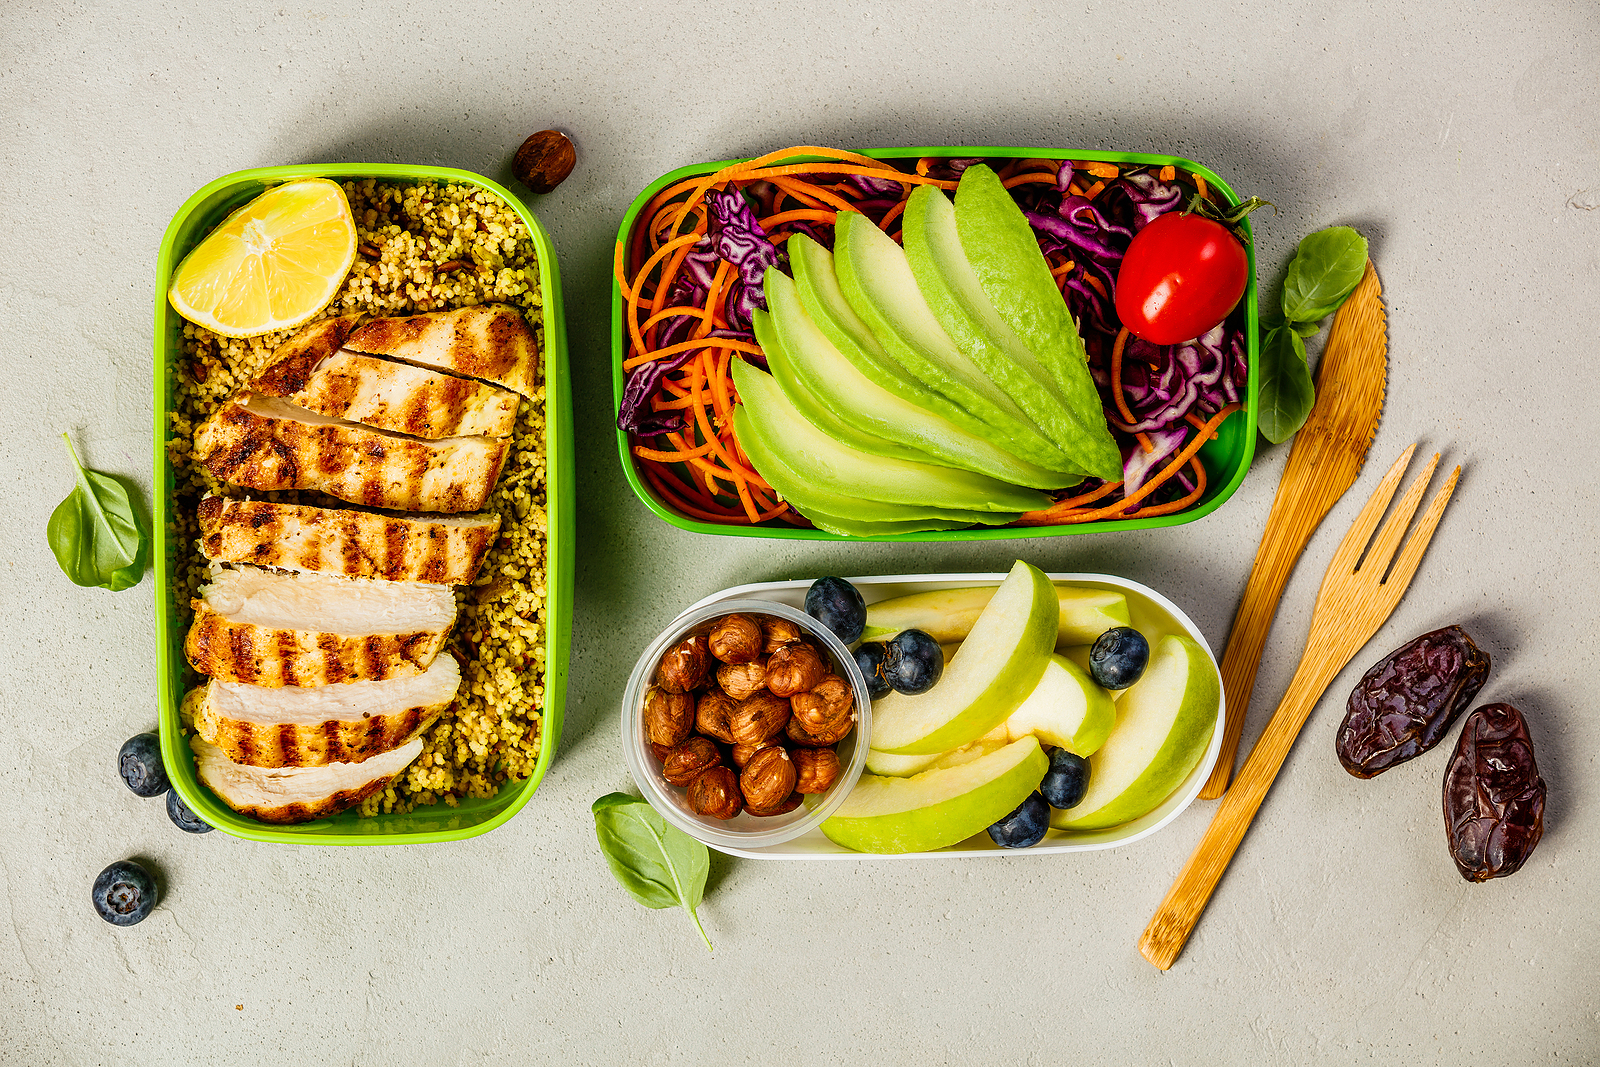 By starting the week off with a list of five dinner options, you can take the guess work out of the evening routine while staying mindful to nutritional needs for you and your family. Utilize a chalkboard, dry erase board, or a kitchen fridge notepad to list out the meal options for the week to keep yourself on track.